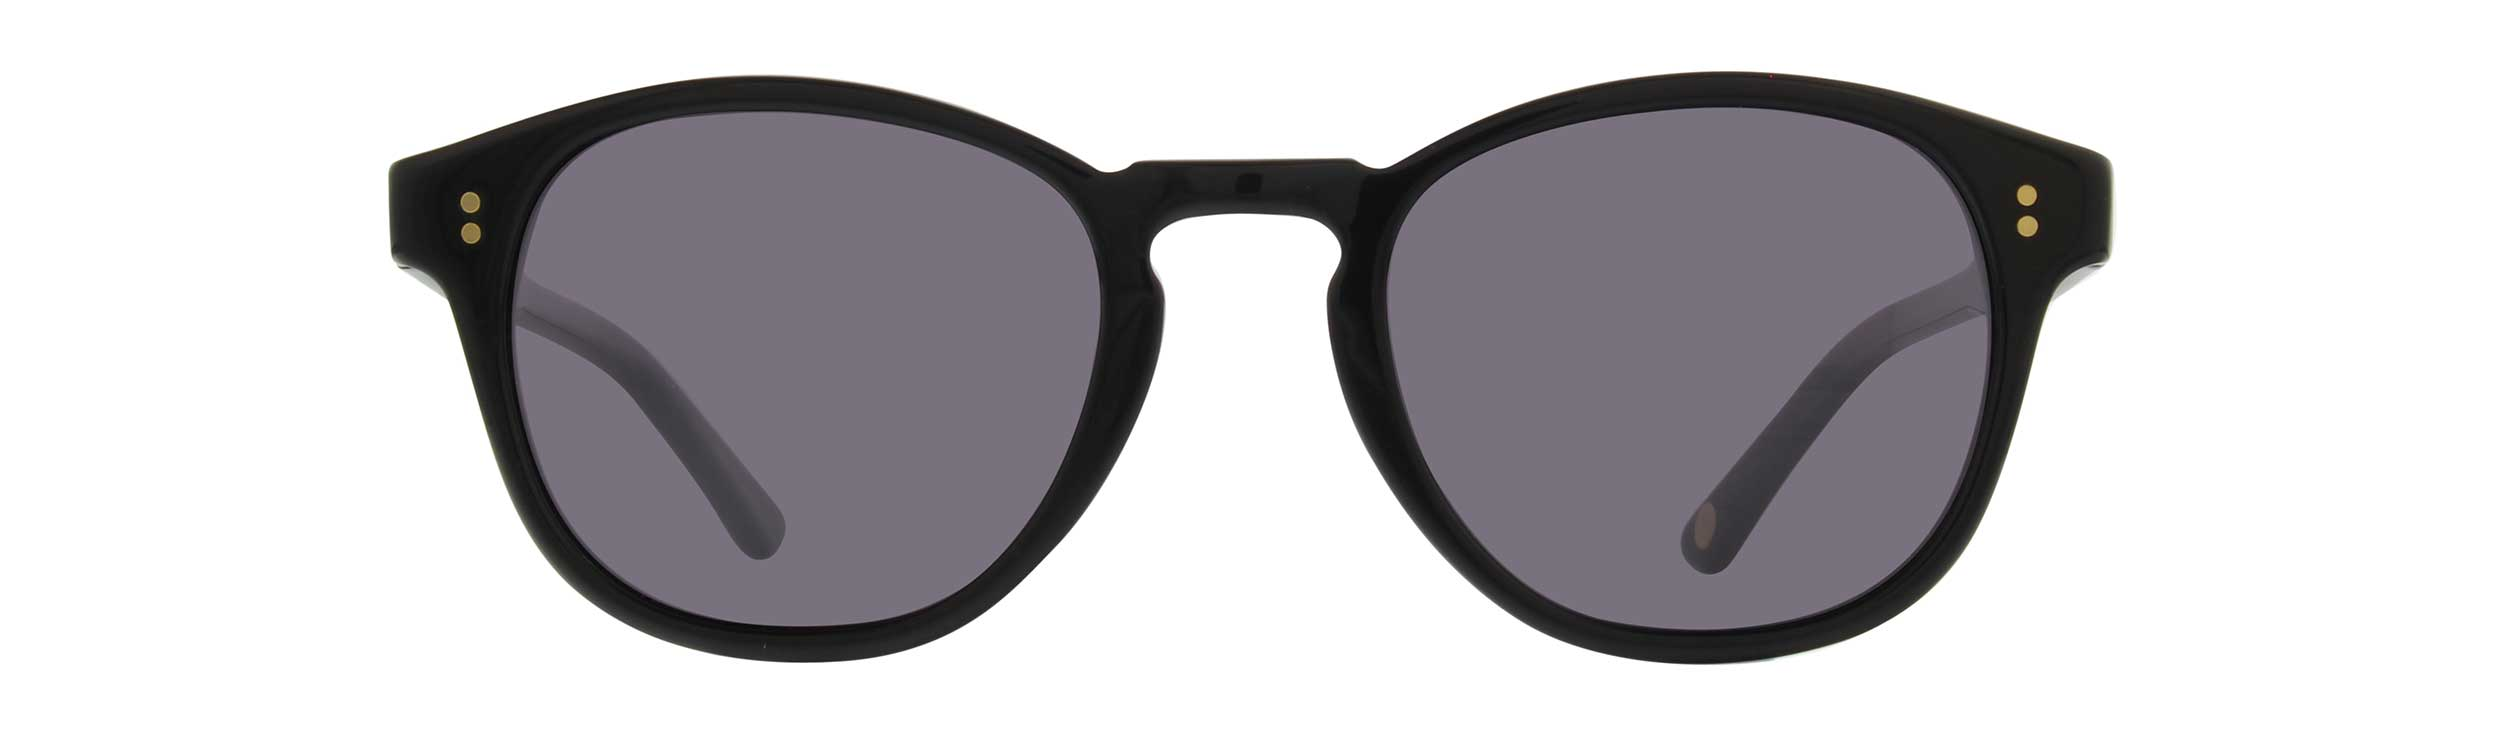 Teele Square Sunglasses